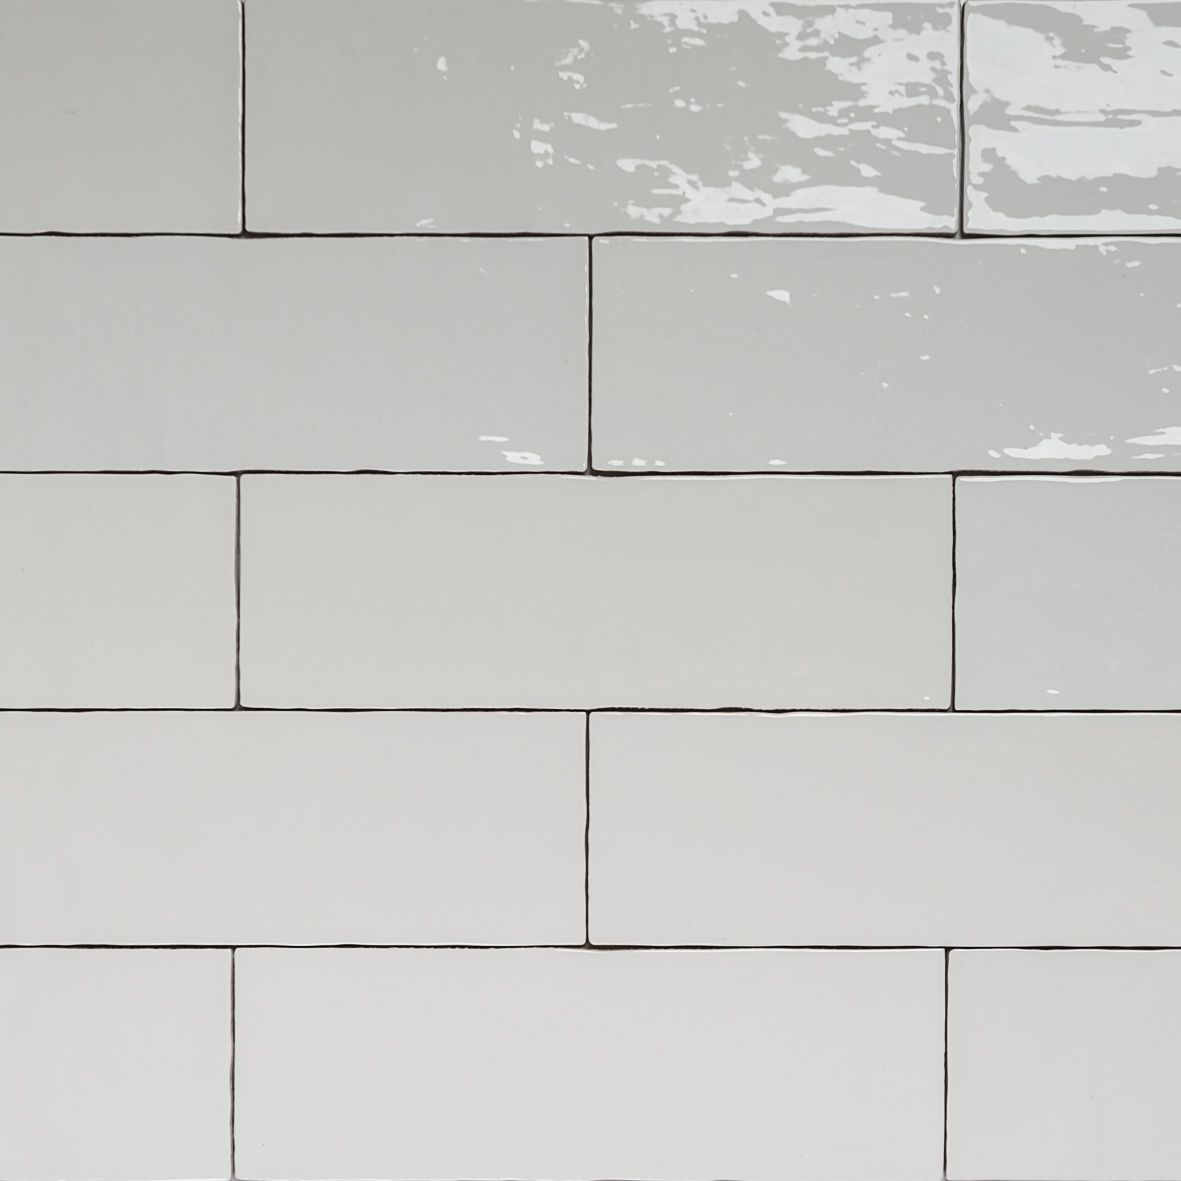 Handmade white gloss natura wall subway tiles 396130 in stretcher handmade white gloss natura wall subway tiles 396130 in stretcher bond design dailygadgetfo Gallery